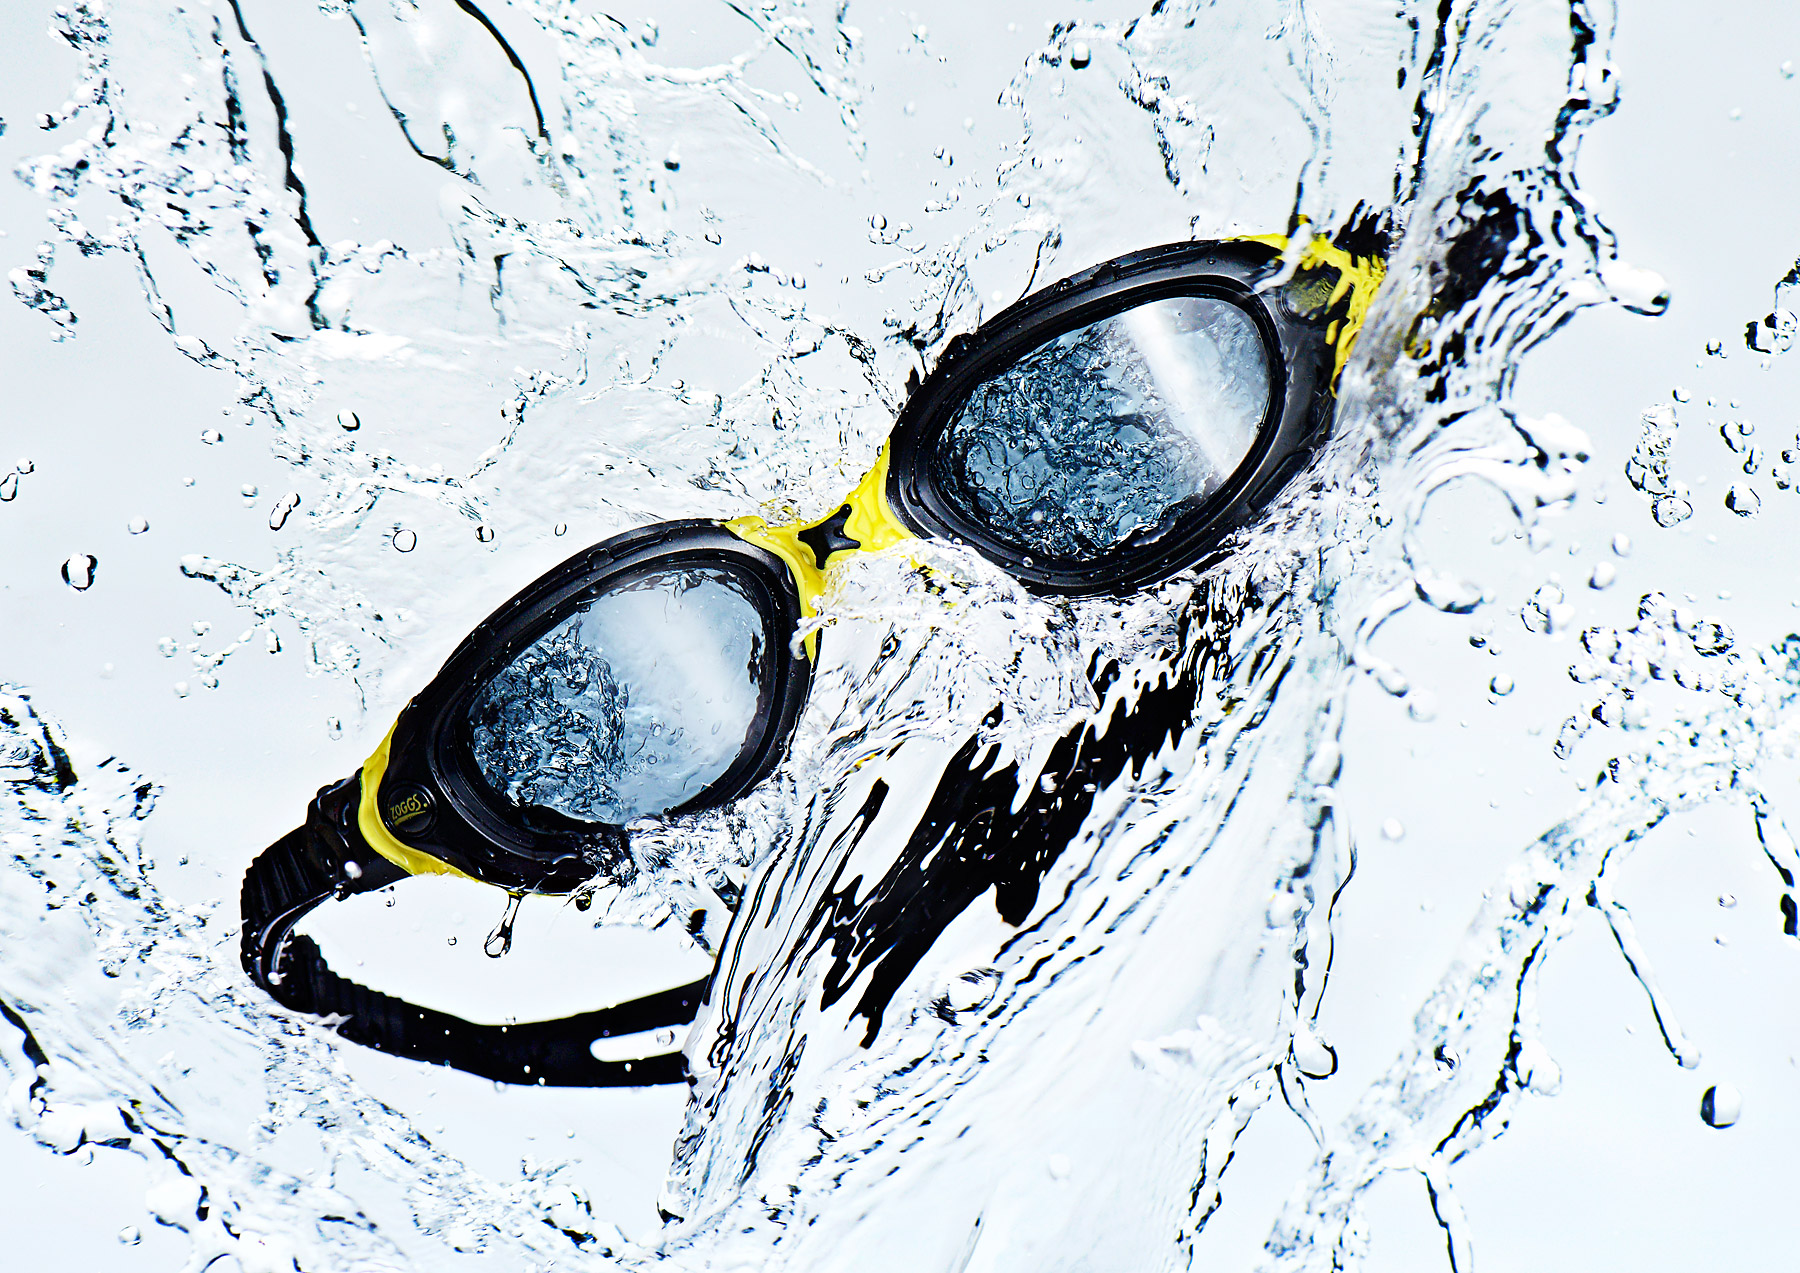 Zoggs swimming goggles falling through splashing water